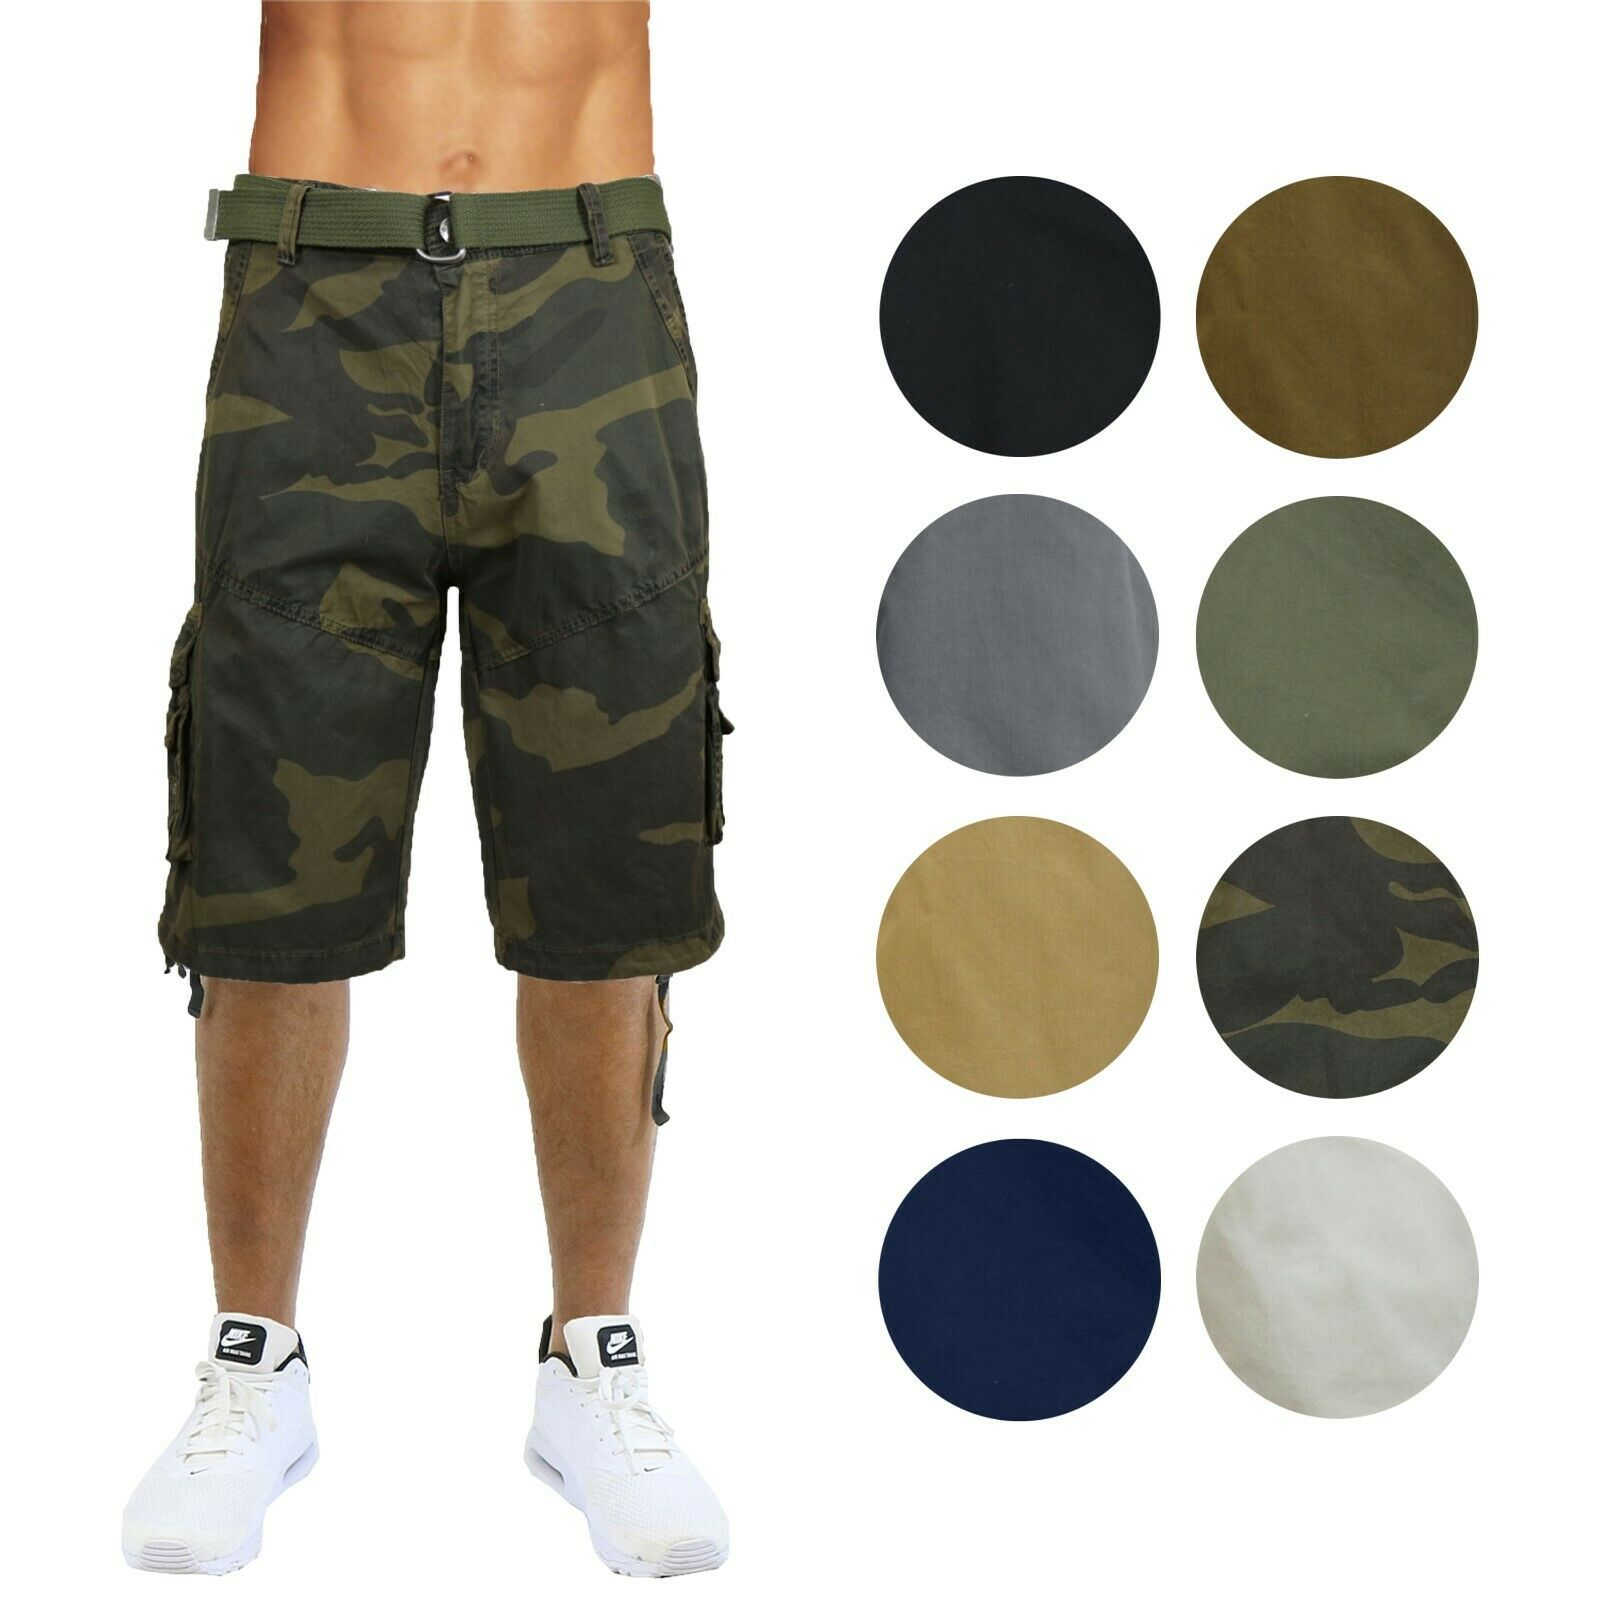 Mens Belted Cargo Shorts Distressed Cotton Vintage Lounge Hiking Sizes 30-48 NEW Clothing, Shoes & Accessories